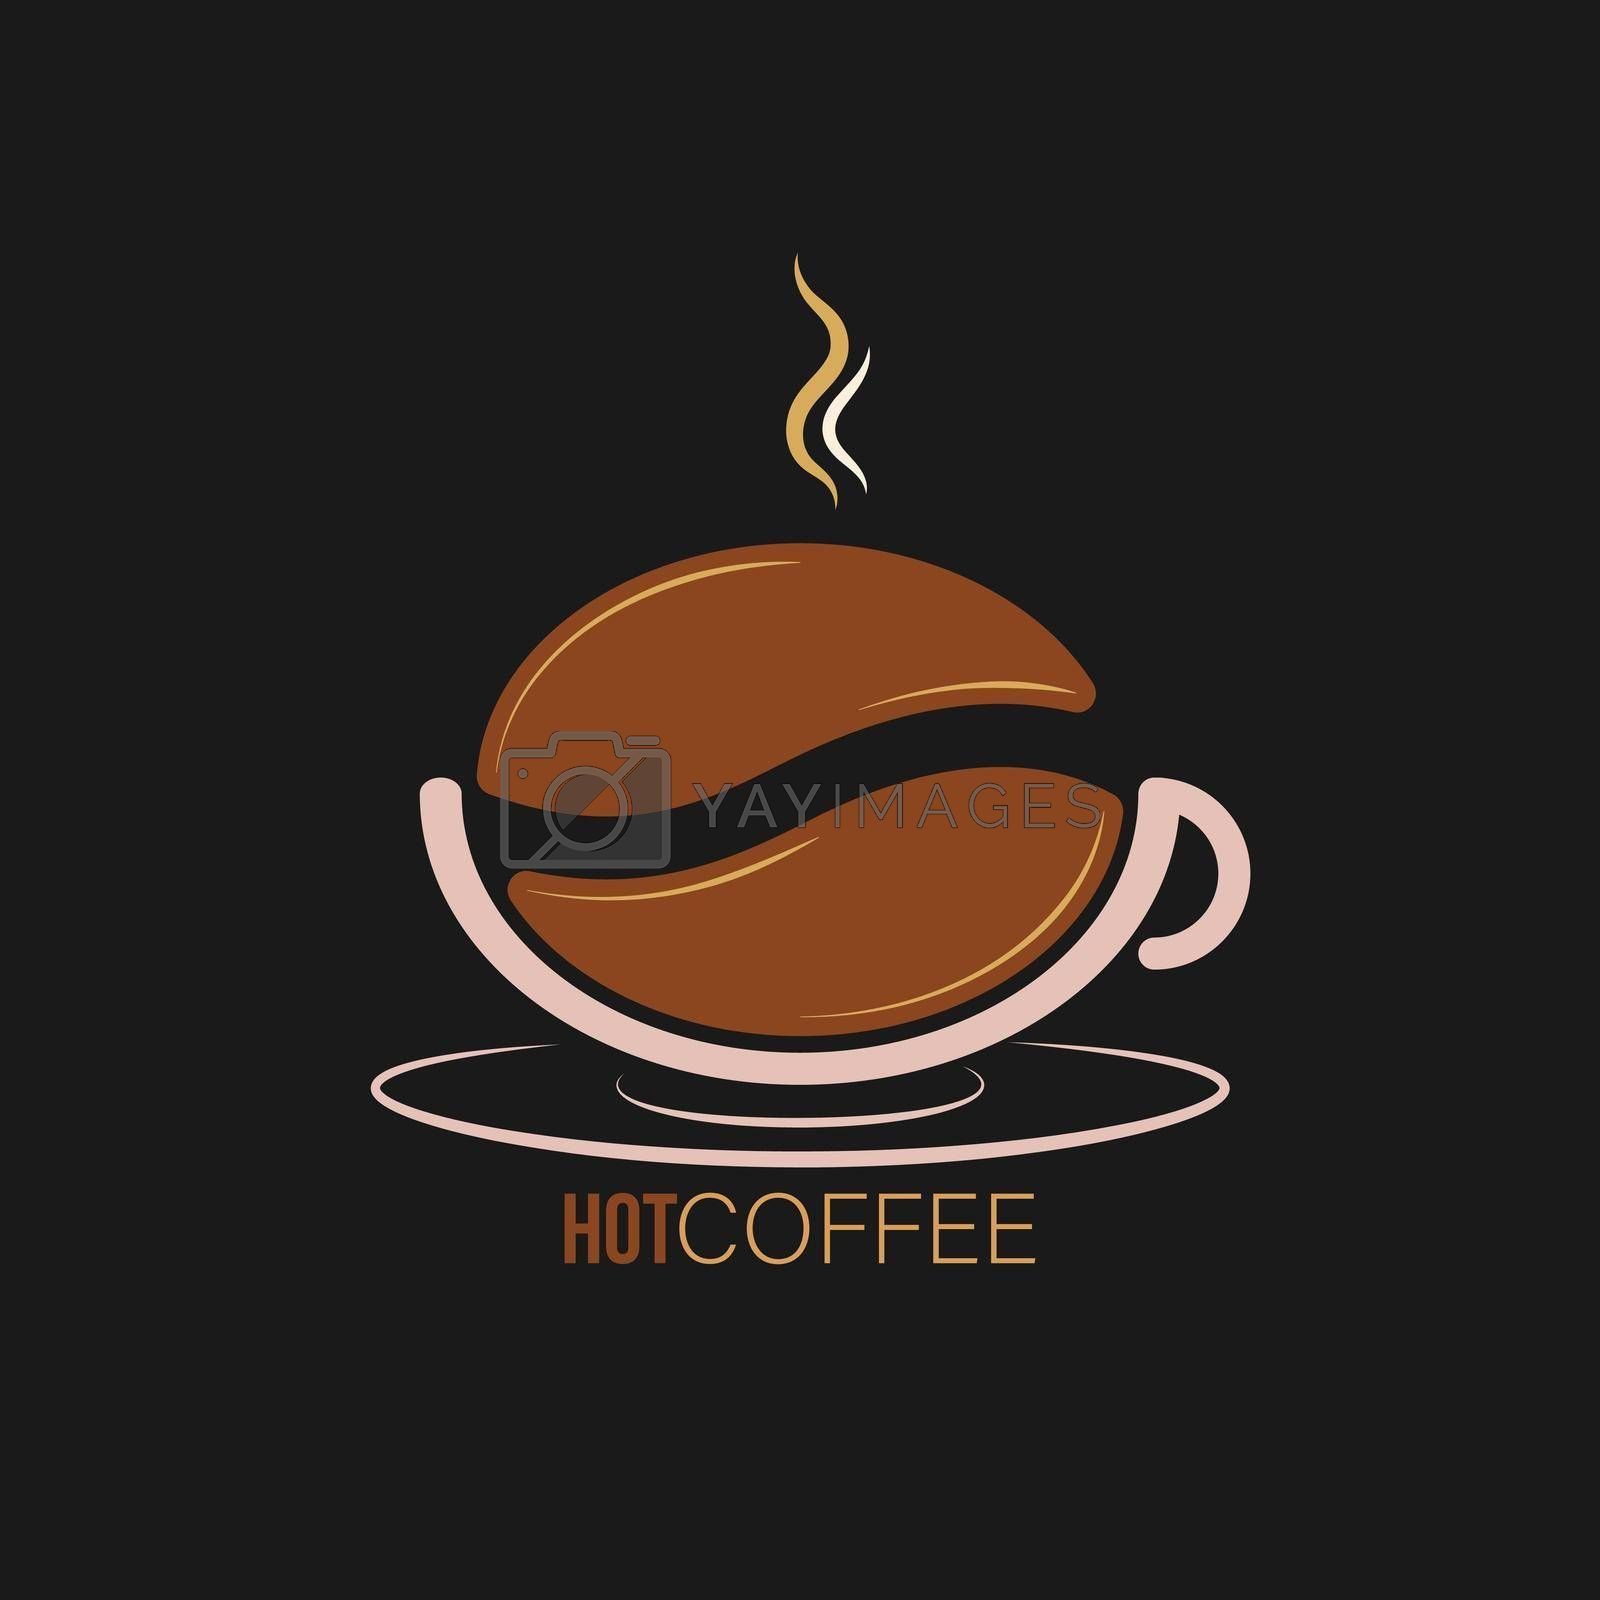 Royalty free image of logo, coffee shop, coffee house, and creative business design. A cup of coffee and a coffee bean by Grommik